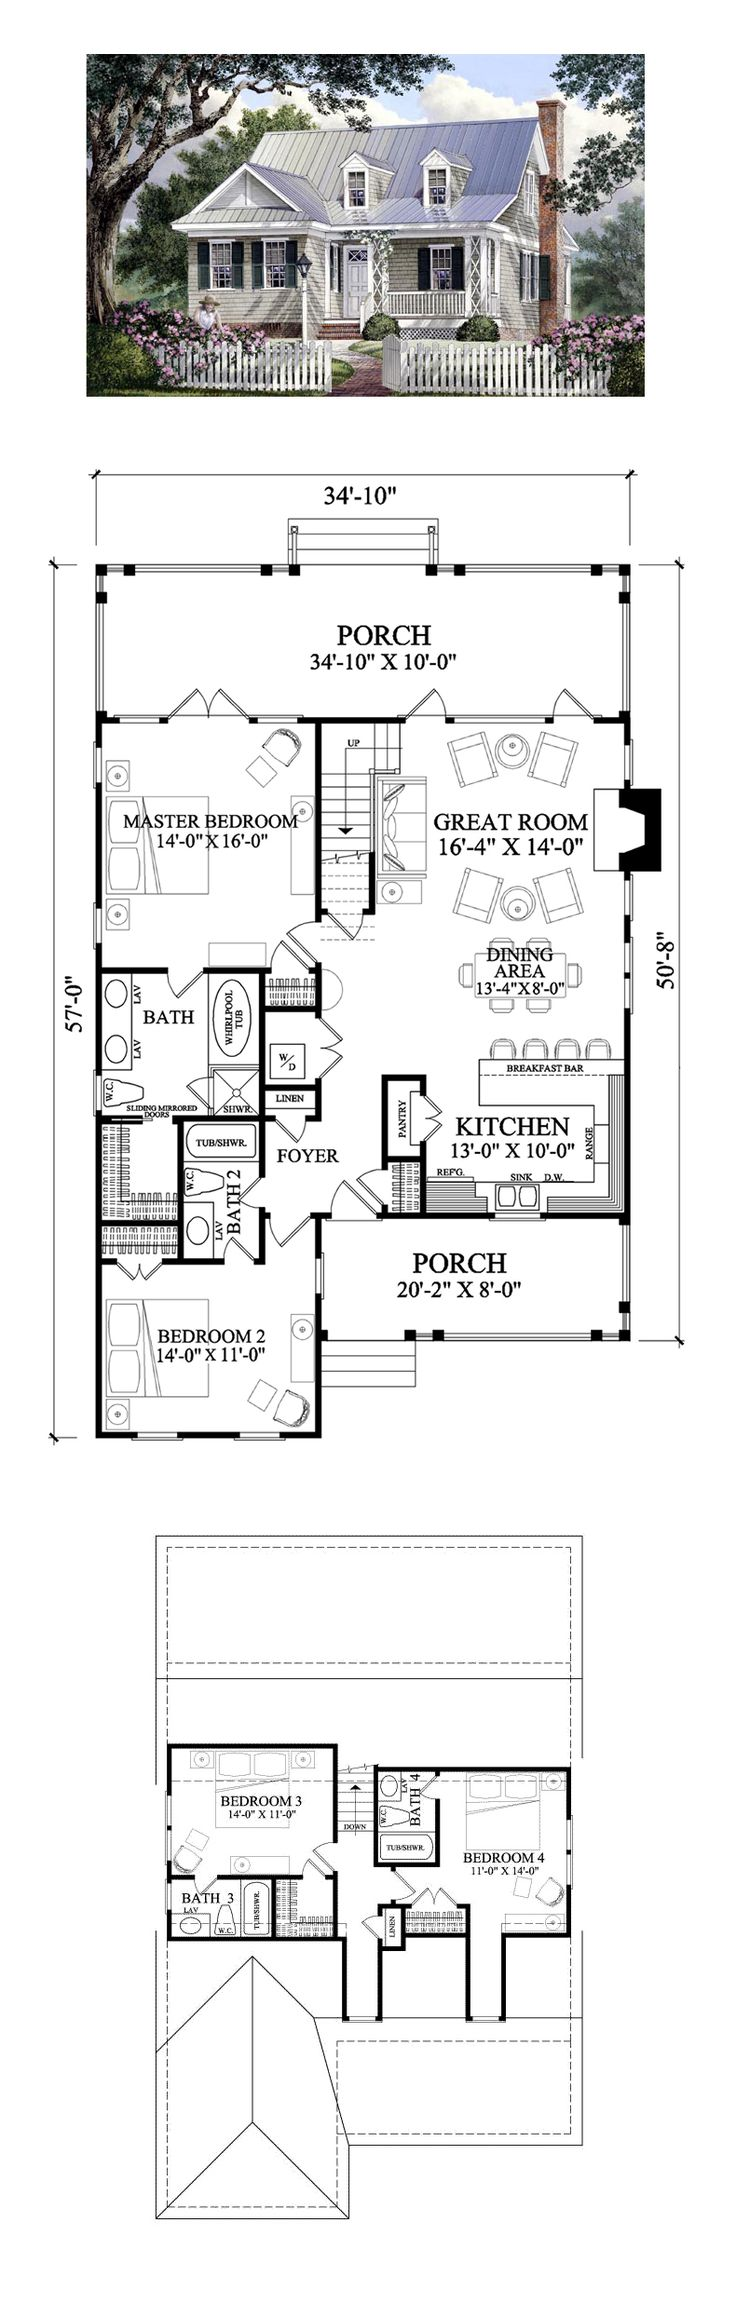 best 25 cottage house plans ideas on pinterest small cottage cape cod cottage country southern house plan 86106 small cottage house plans4